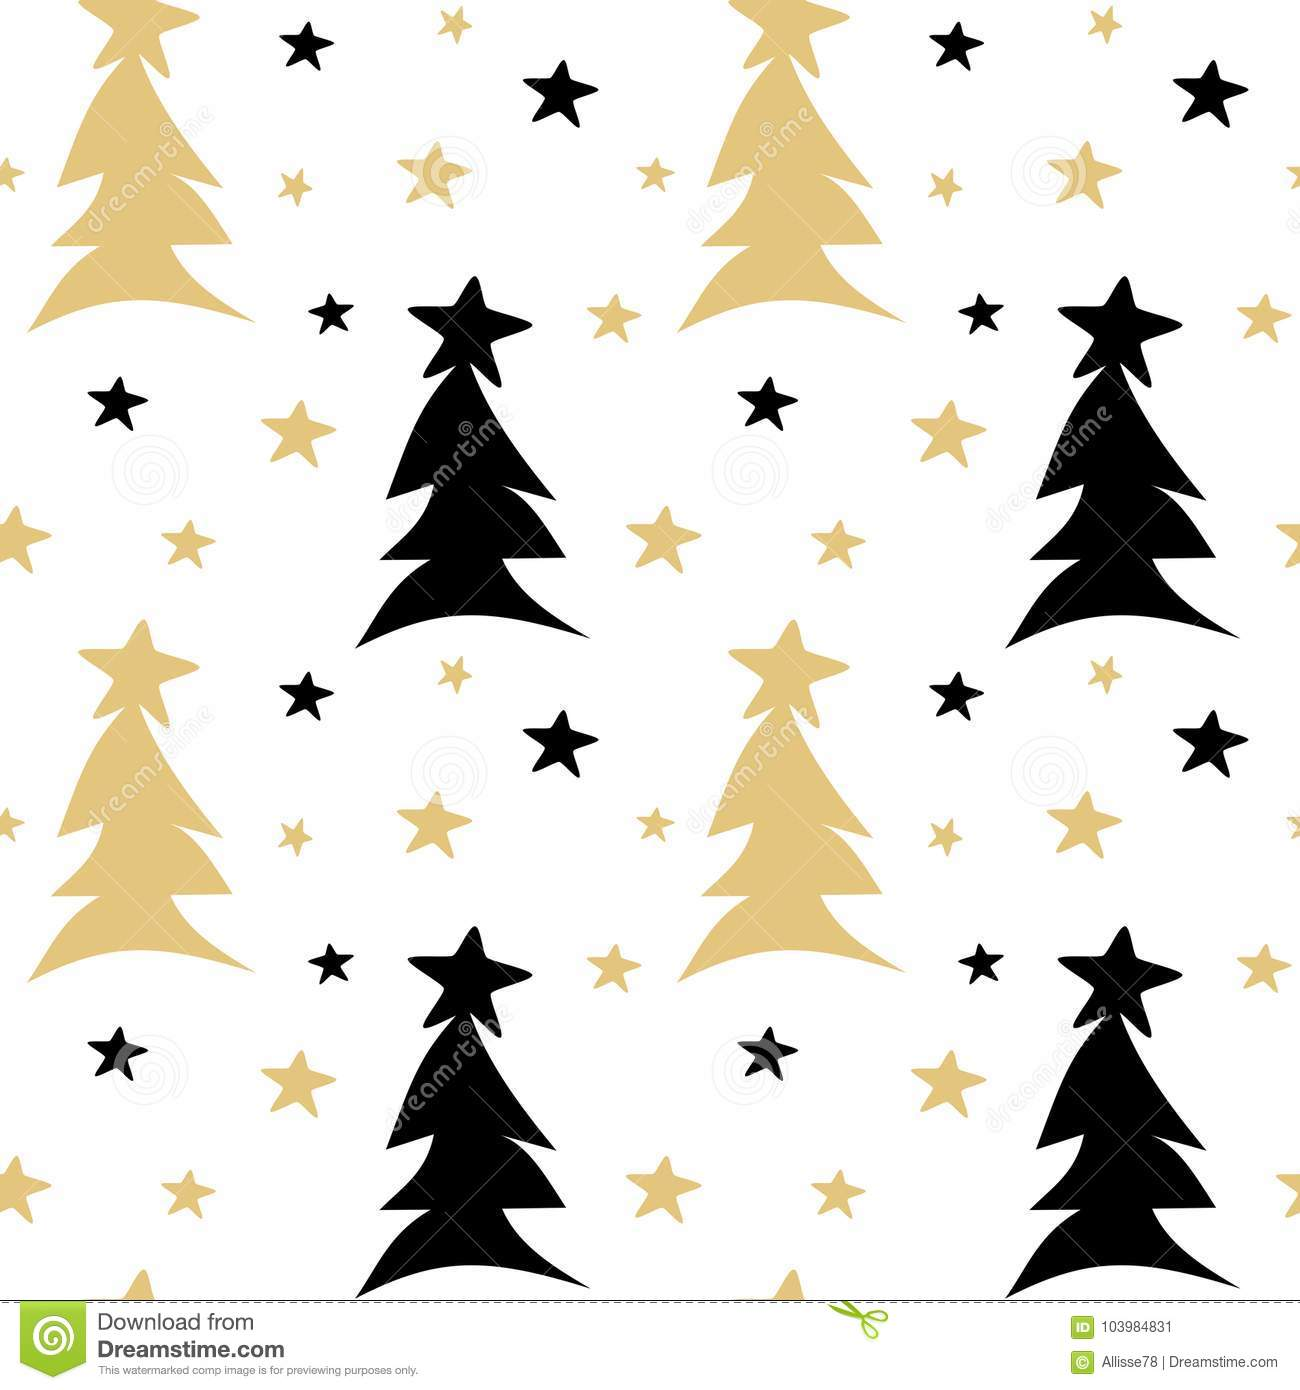 Hand drawn black white gold seamless vector pattern background illustration with abstract christmas trees and stars